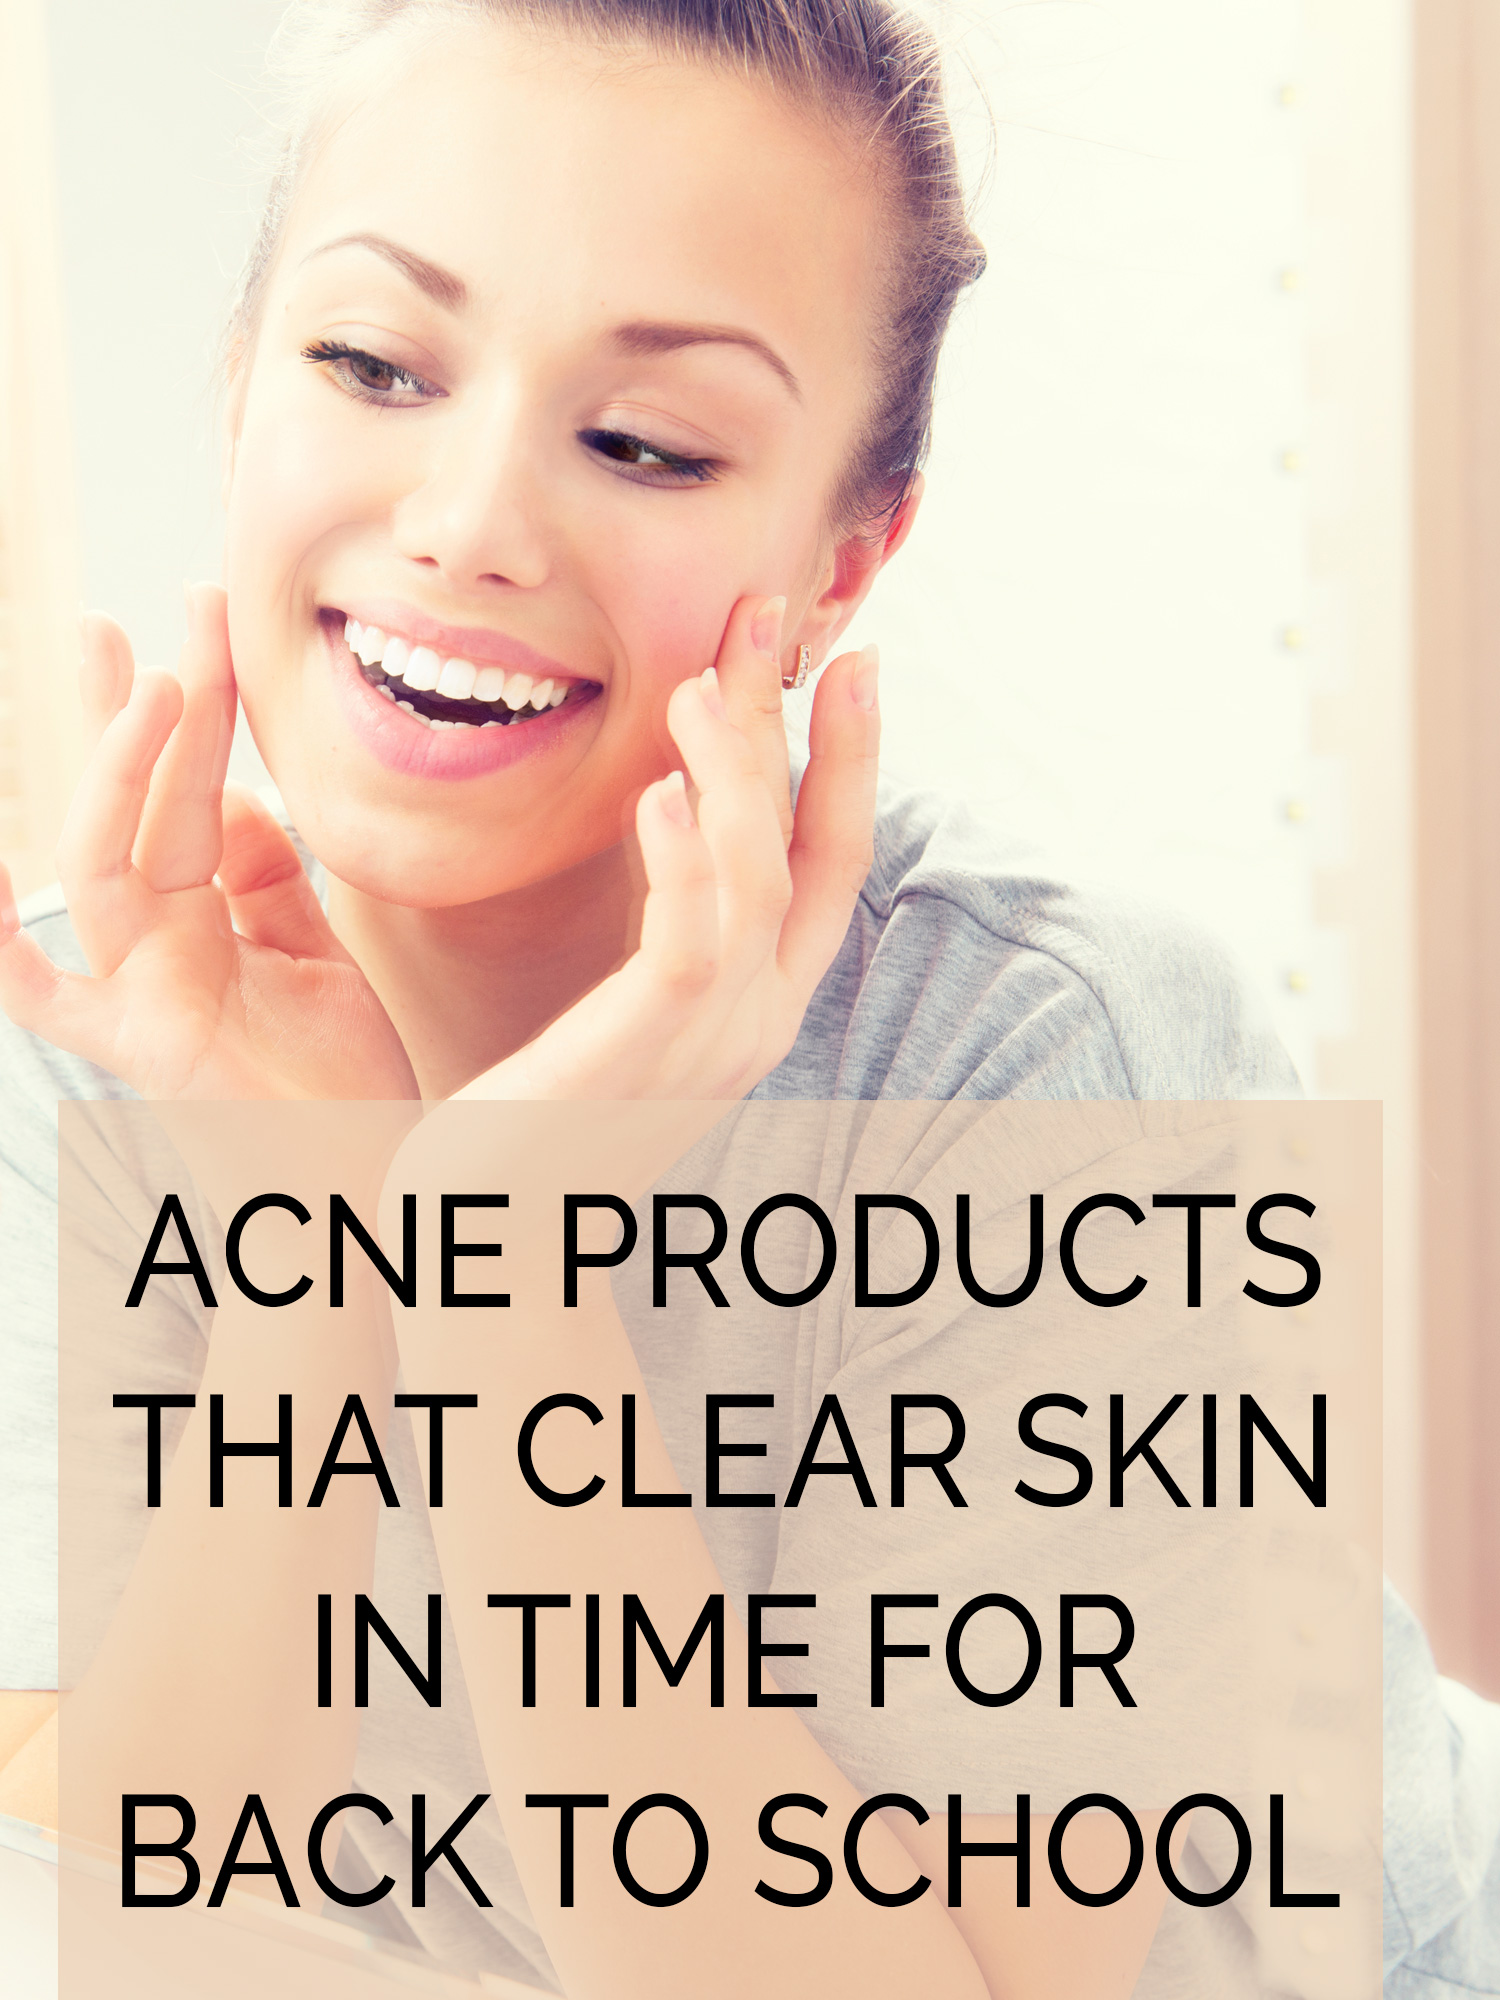 Going Back to School with Clear Skin: 10 Acne Products that Clear Skin in Time for Back to School